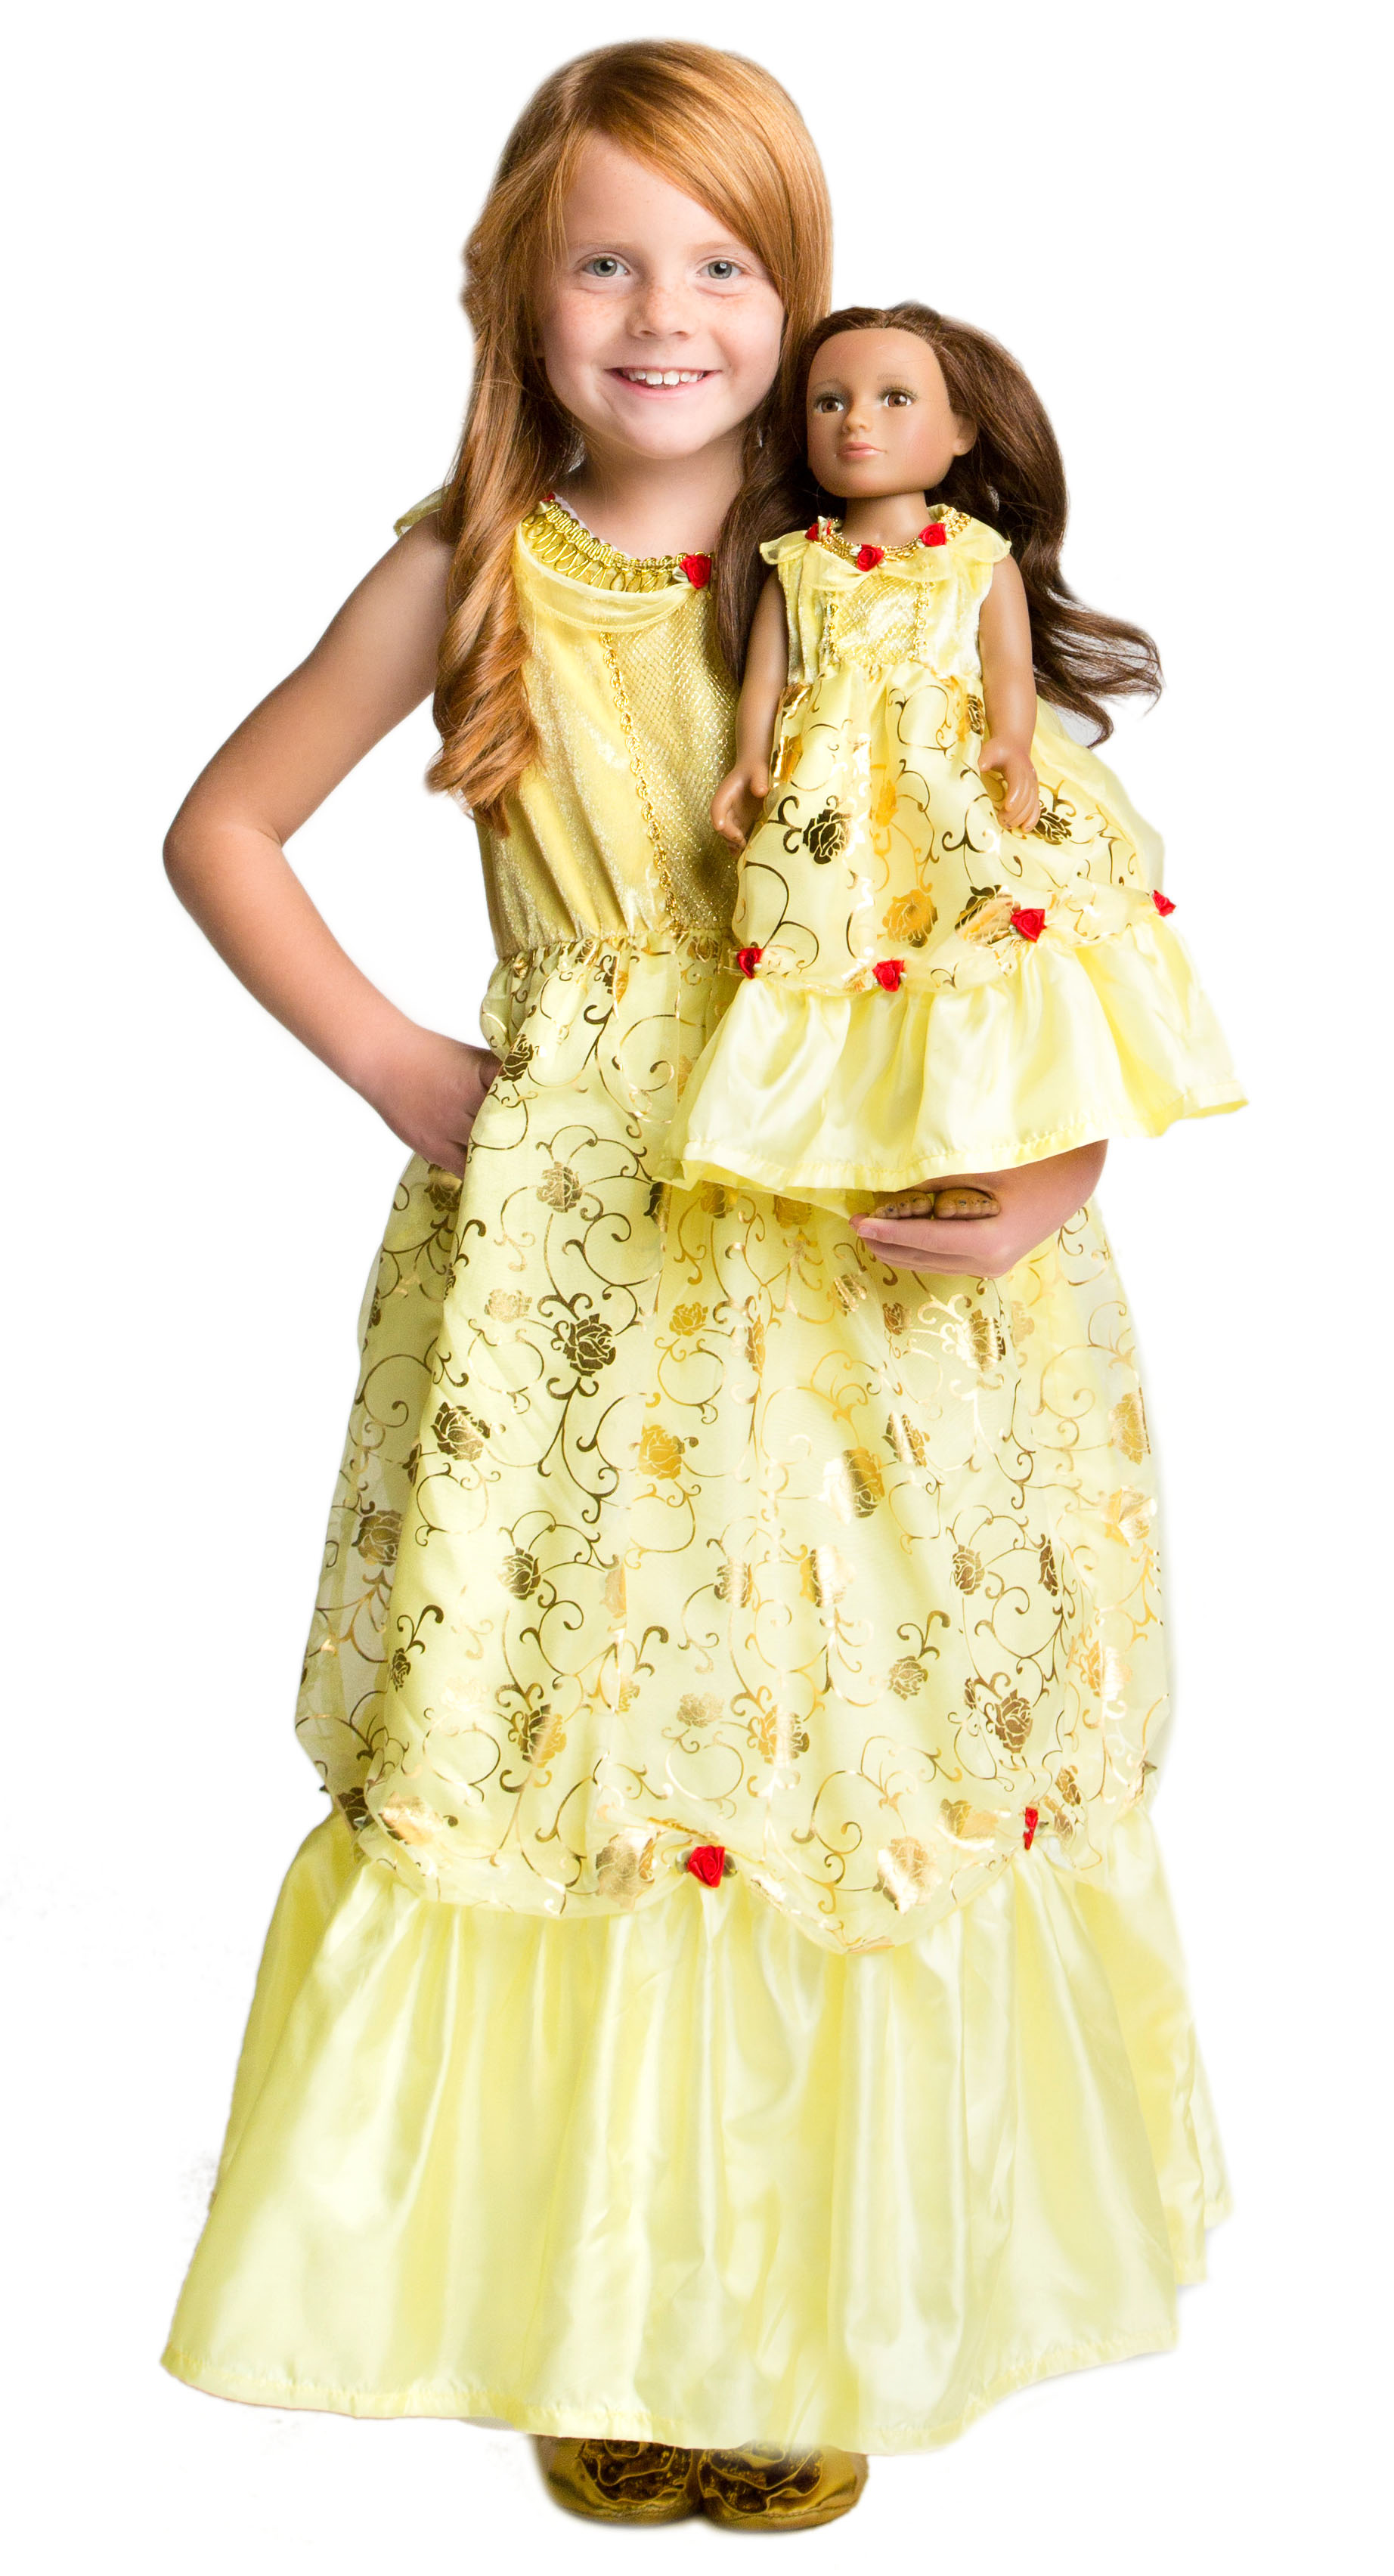 Belle of the Ball Beauty Costume Child and Doll Dress Set